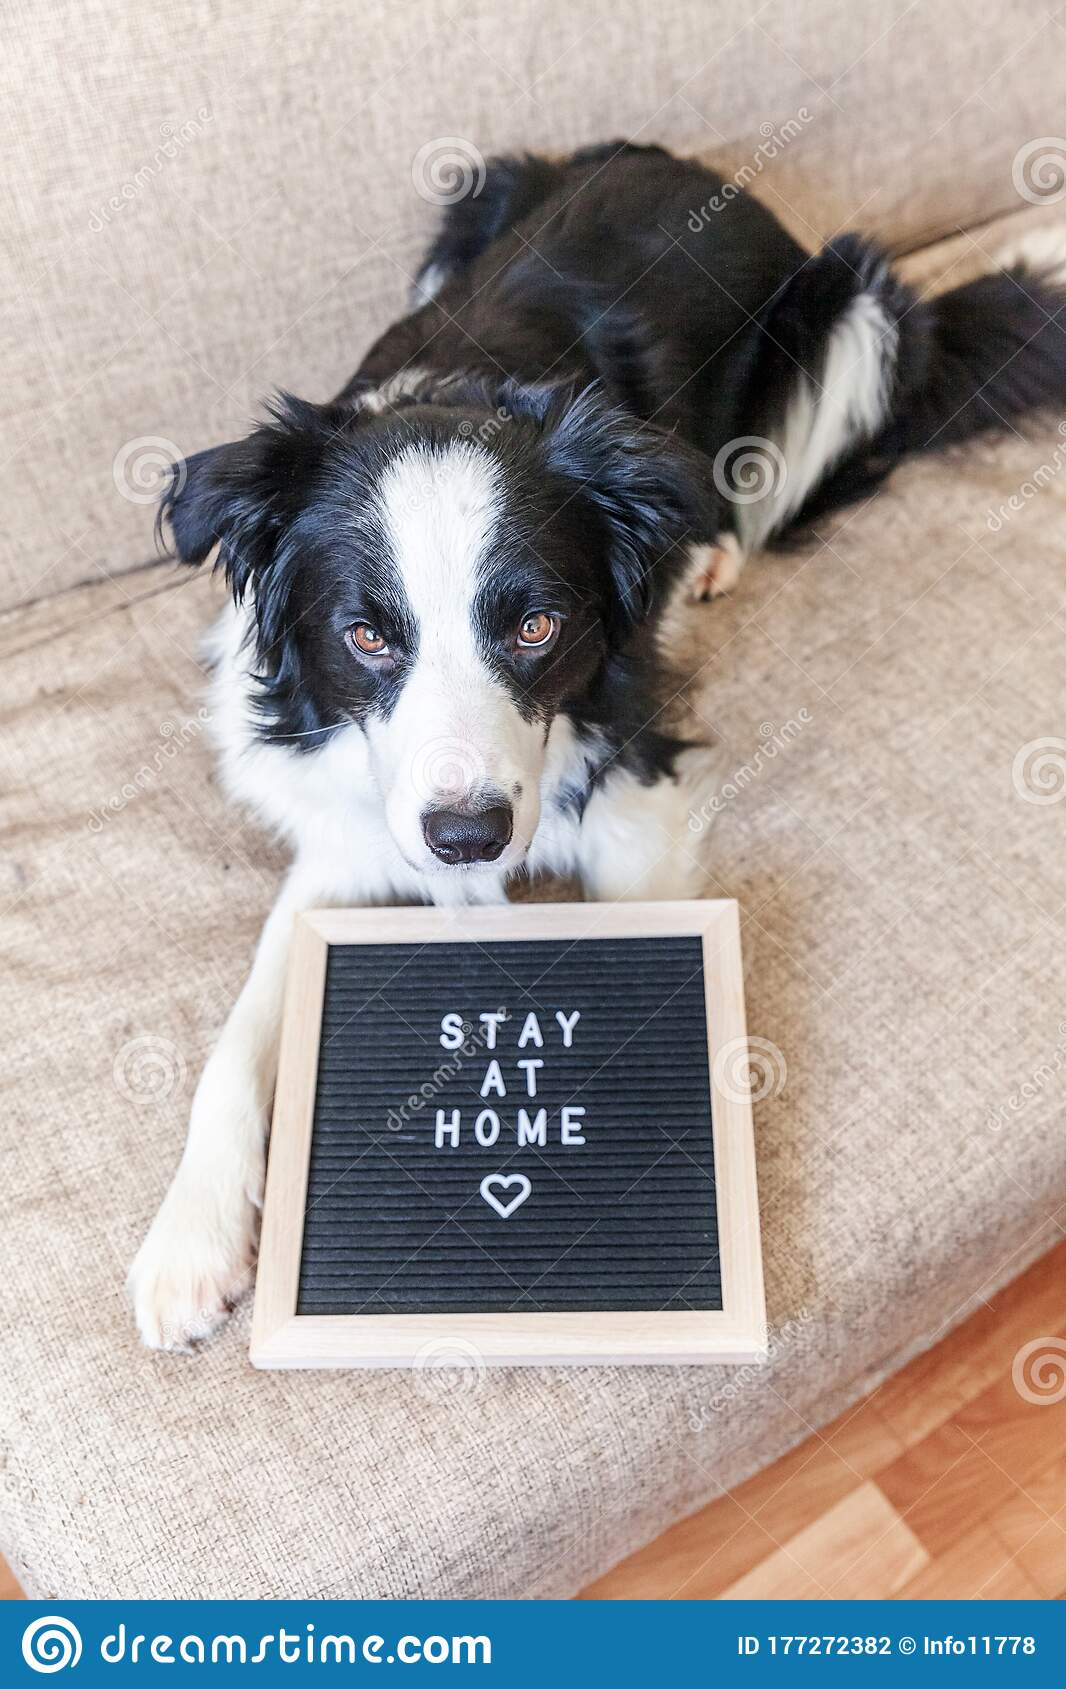 Stay Home Funny Portrait Of Cute Puppy Dog On Couch With Letter Board Inscription Stay At Home Word New Lovely Member Of Family Stock Photo Image Of Adorable Doggy 177272382